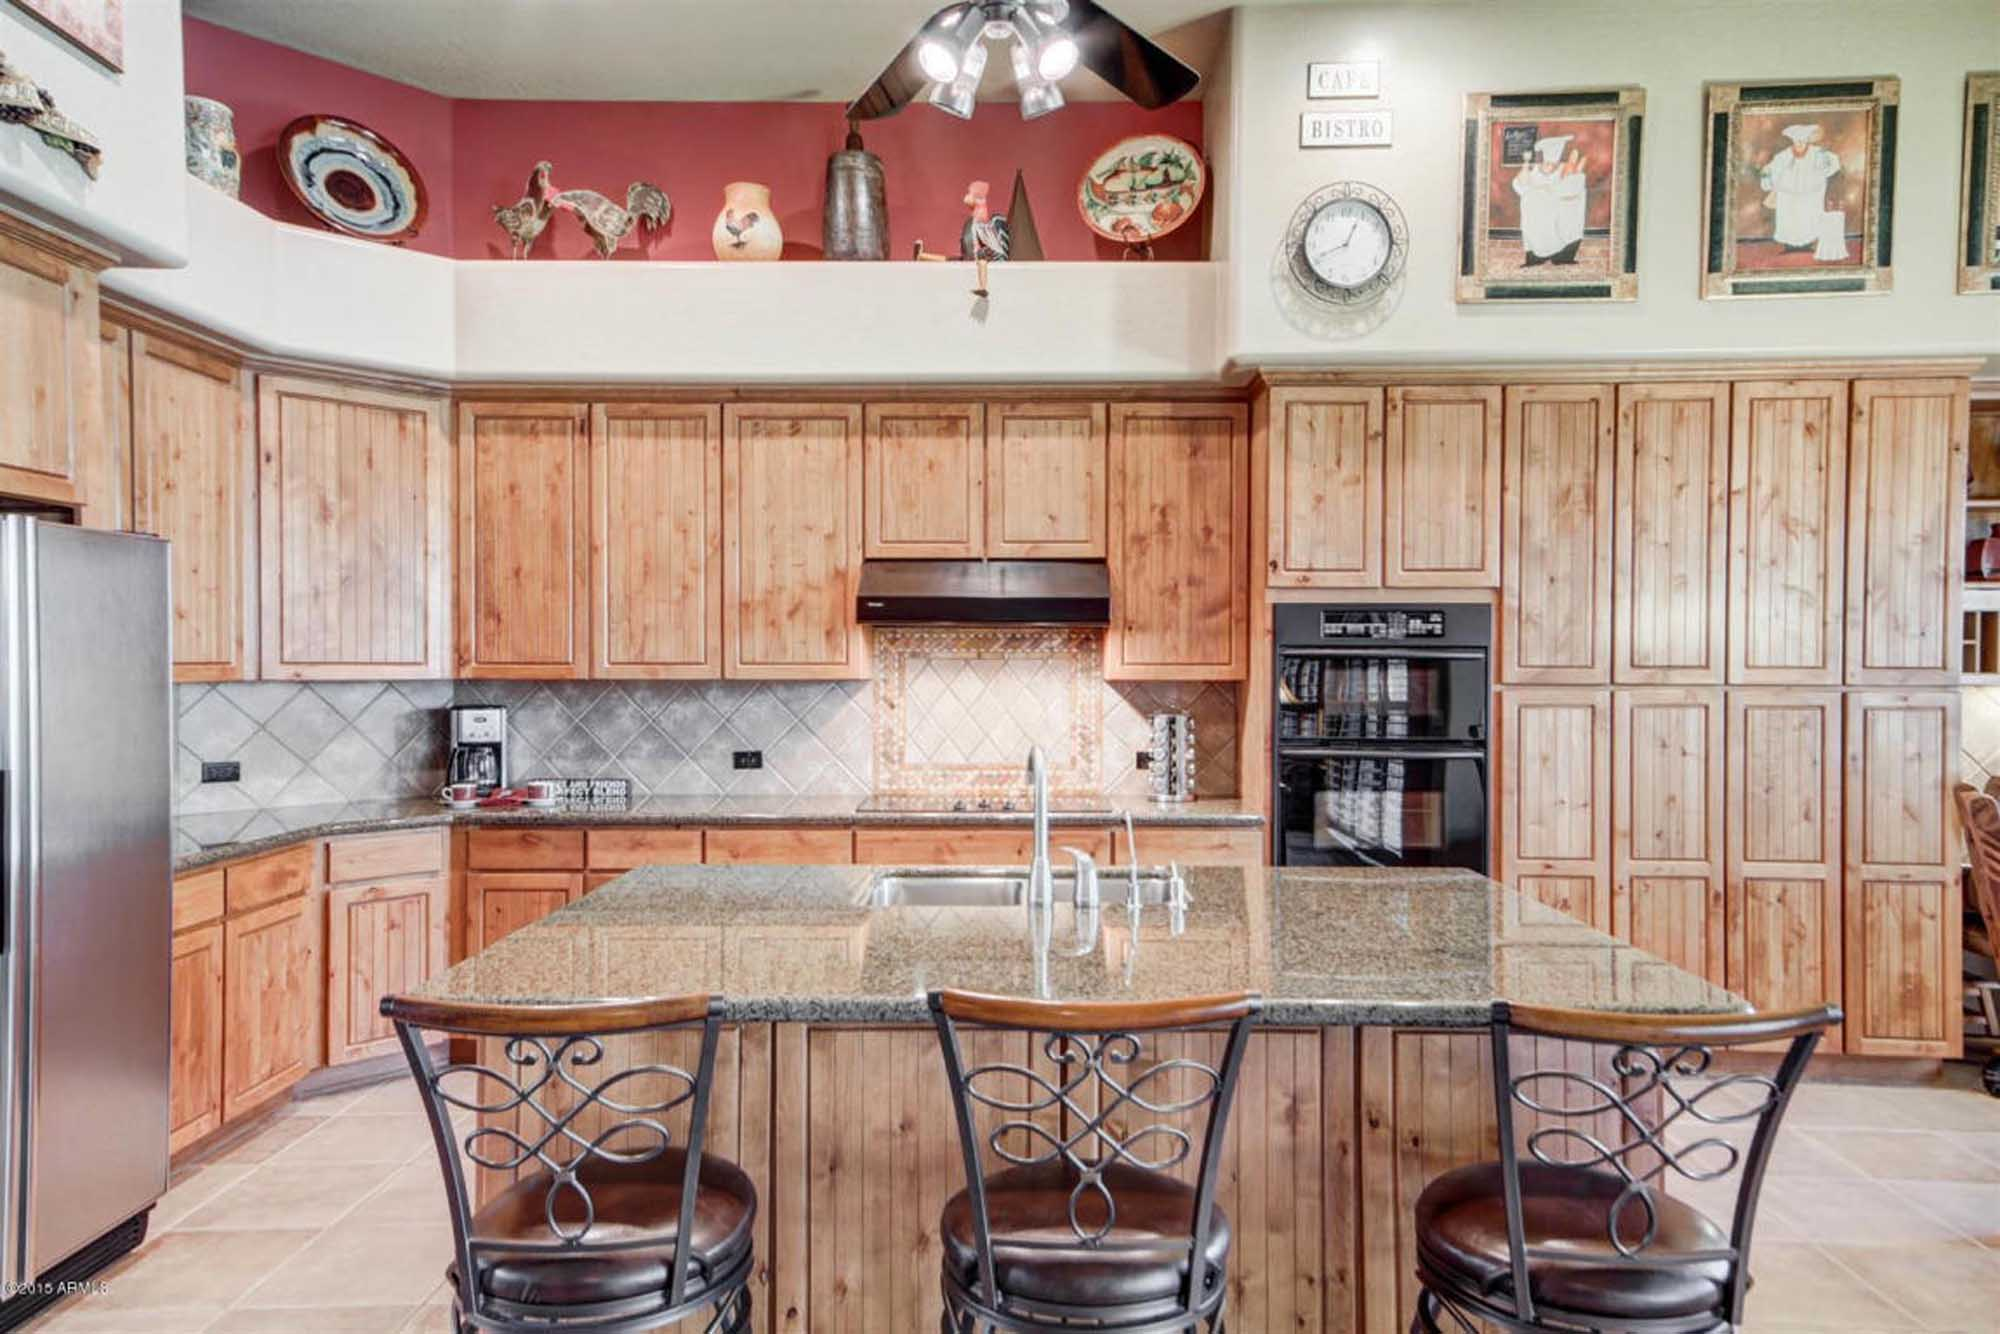 Old kitchen design with cabinets